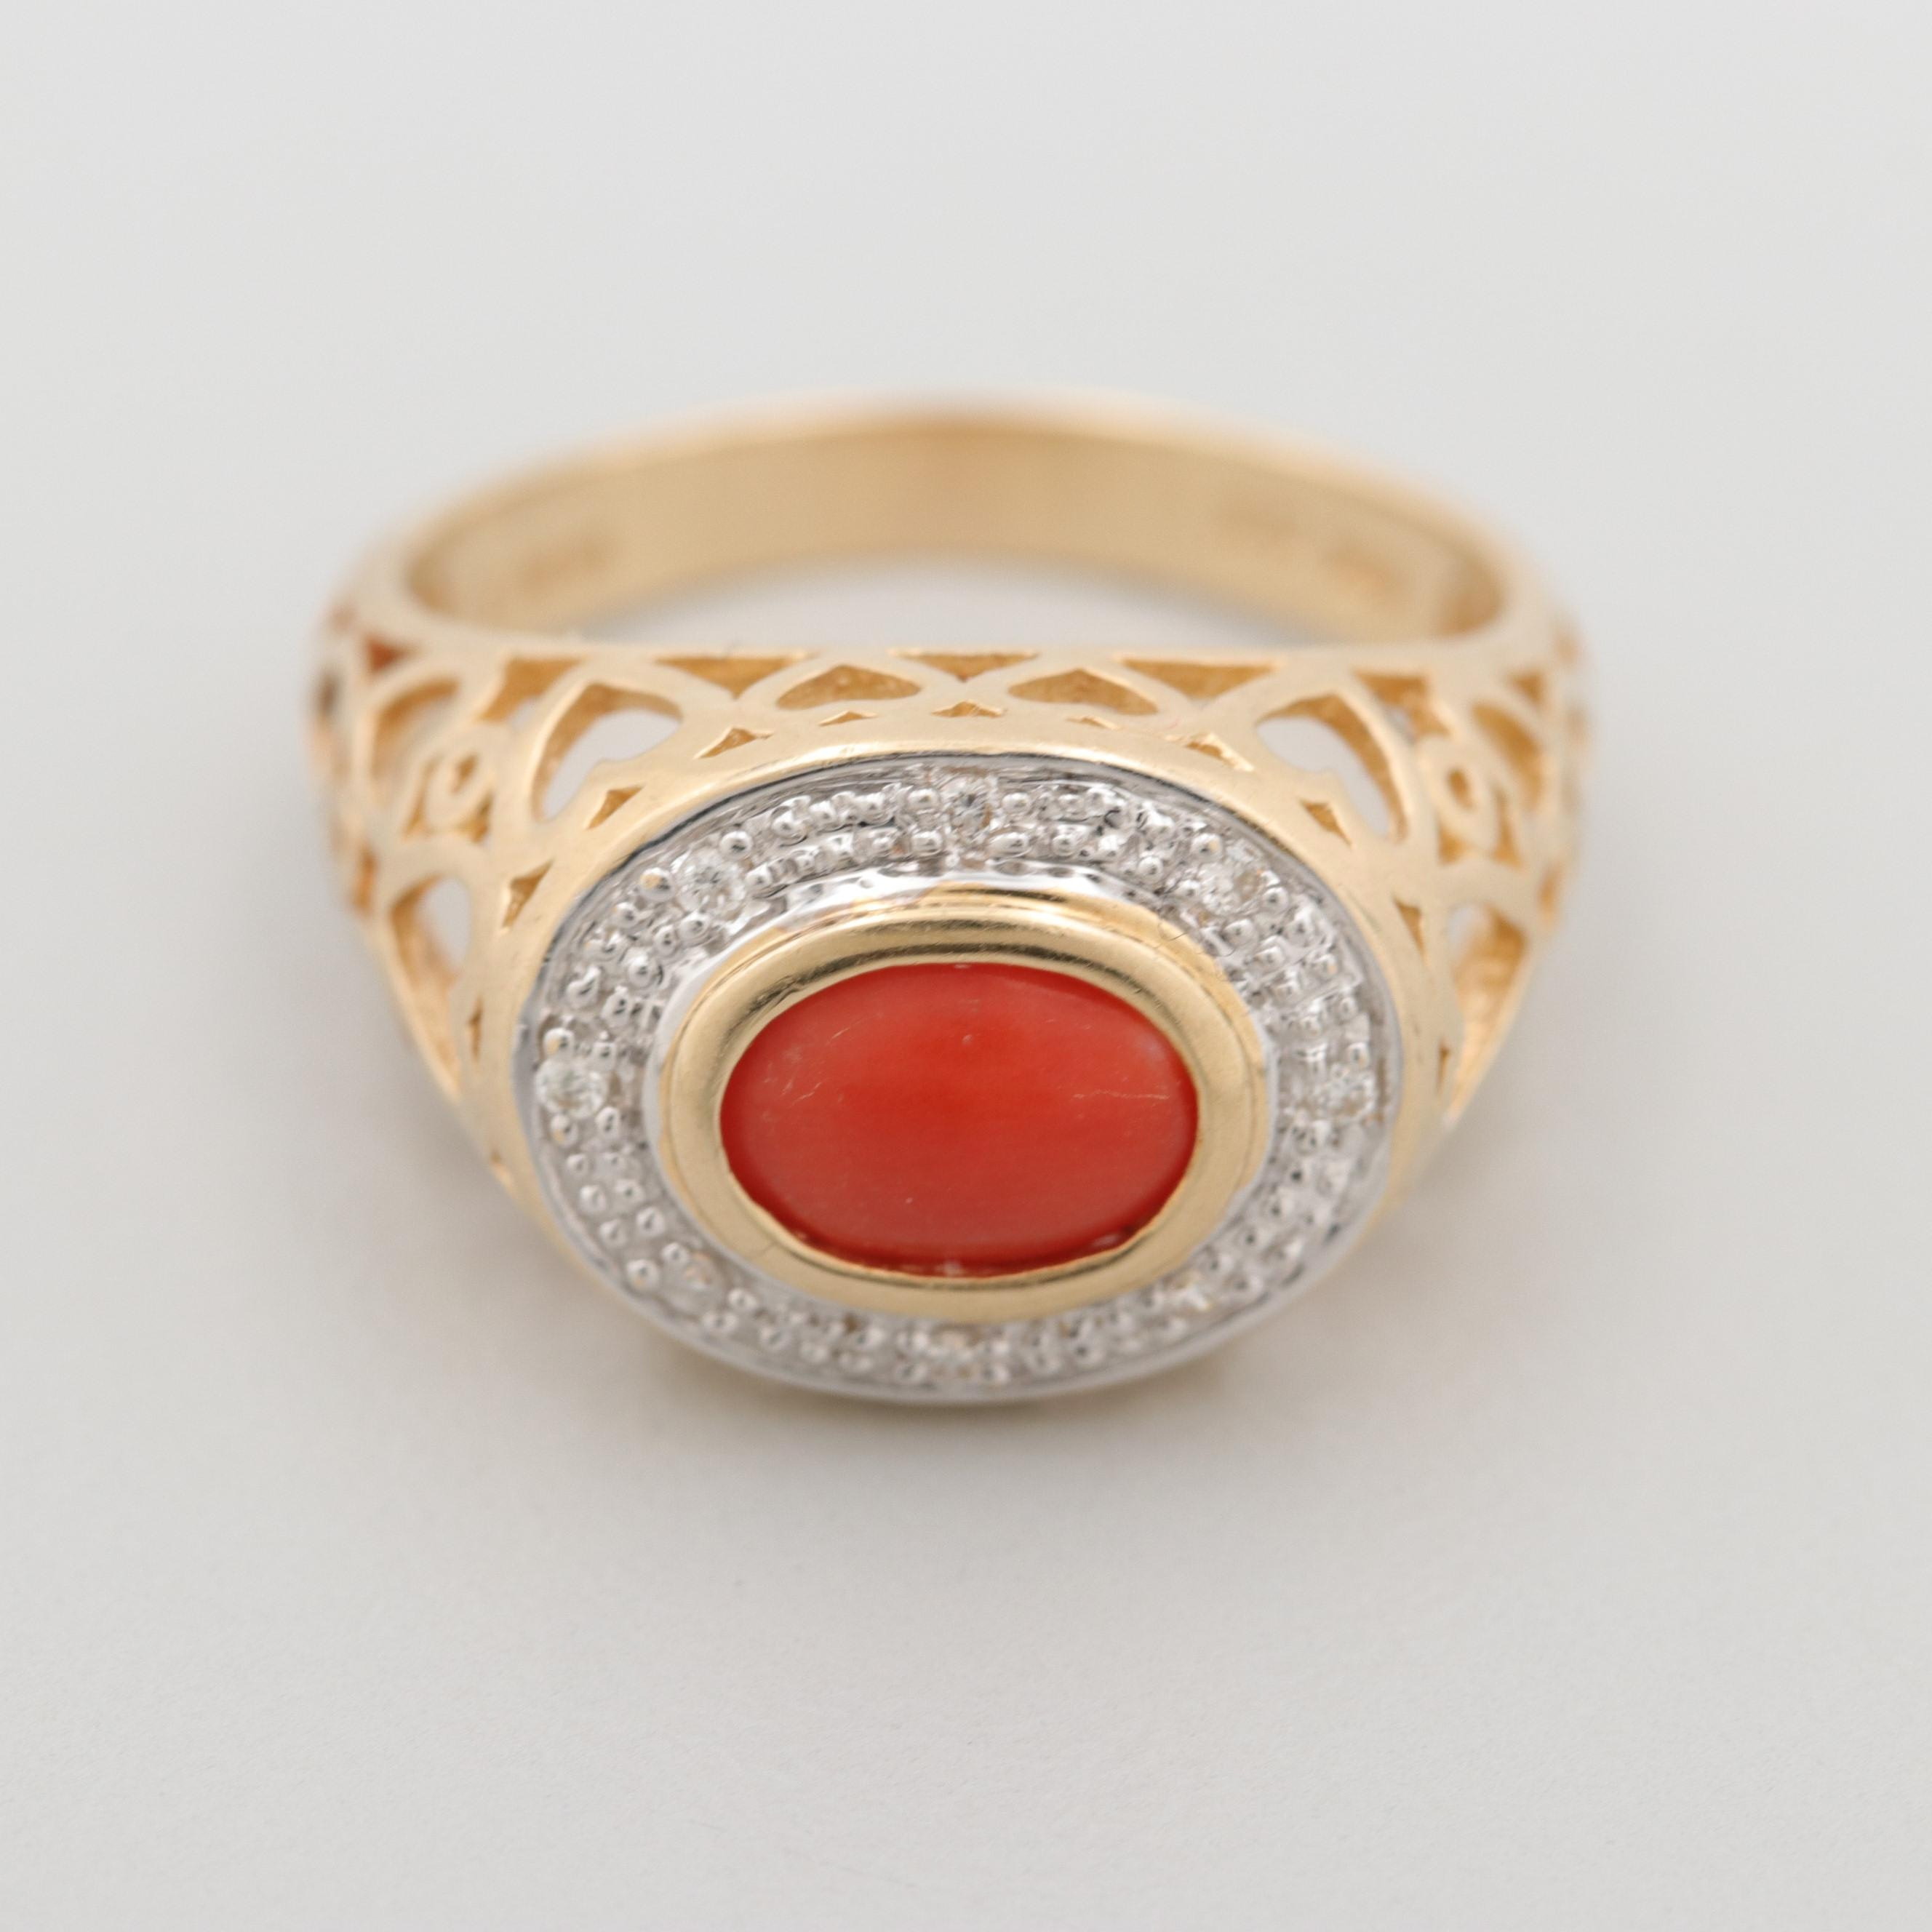 Le Vian 14K Yellow Gold Coral and Diamond Ring